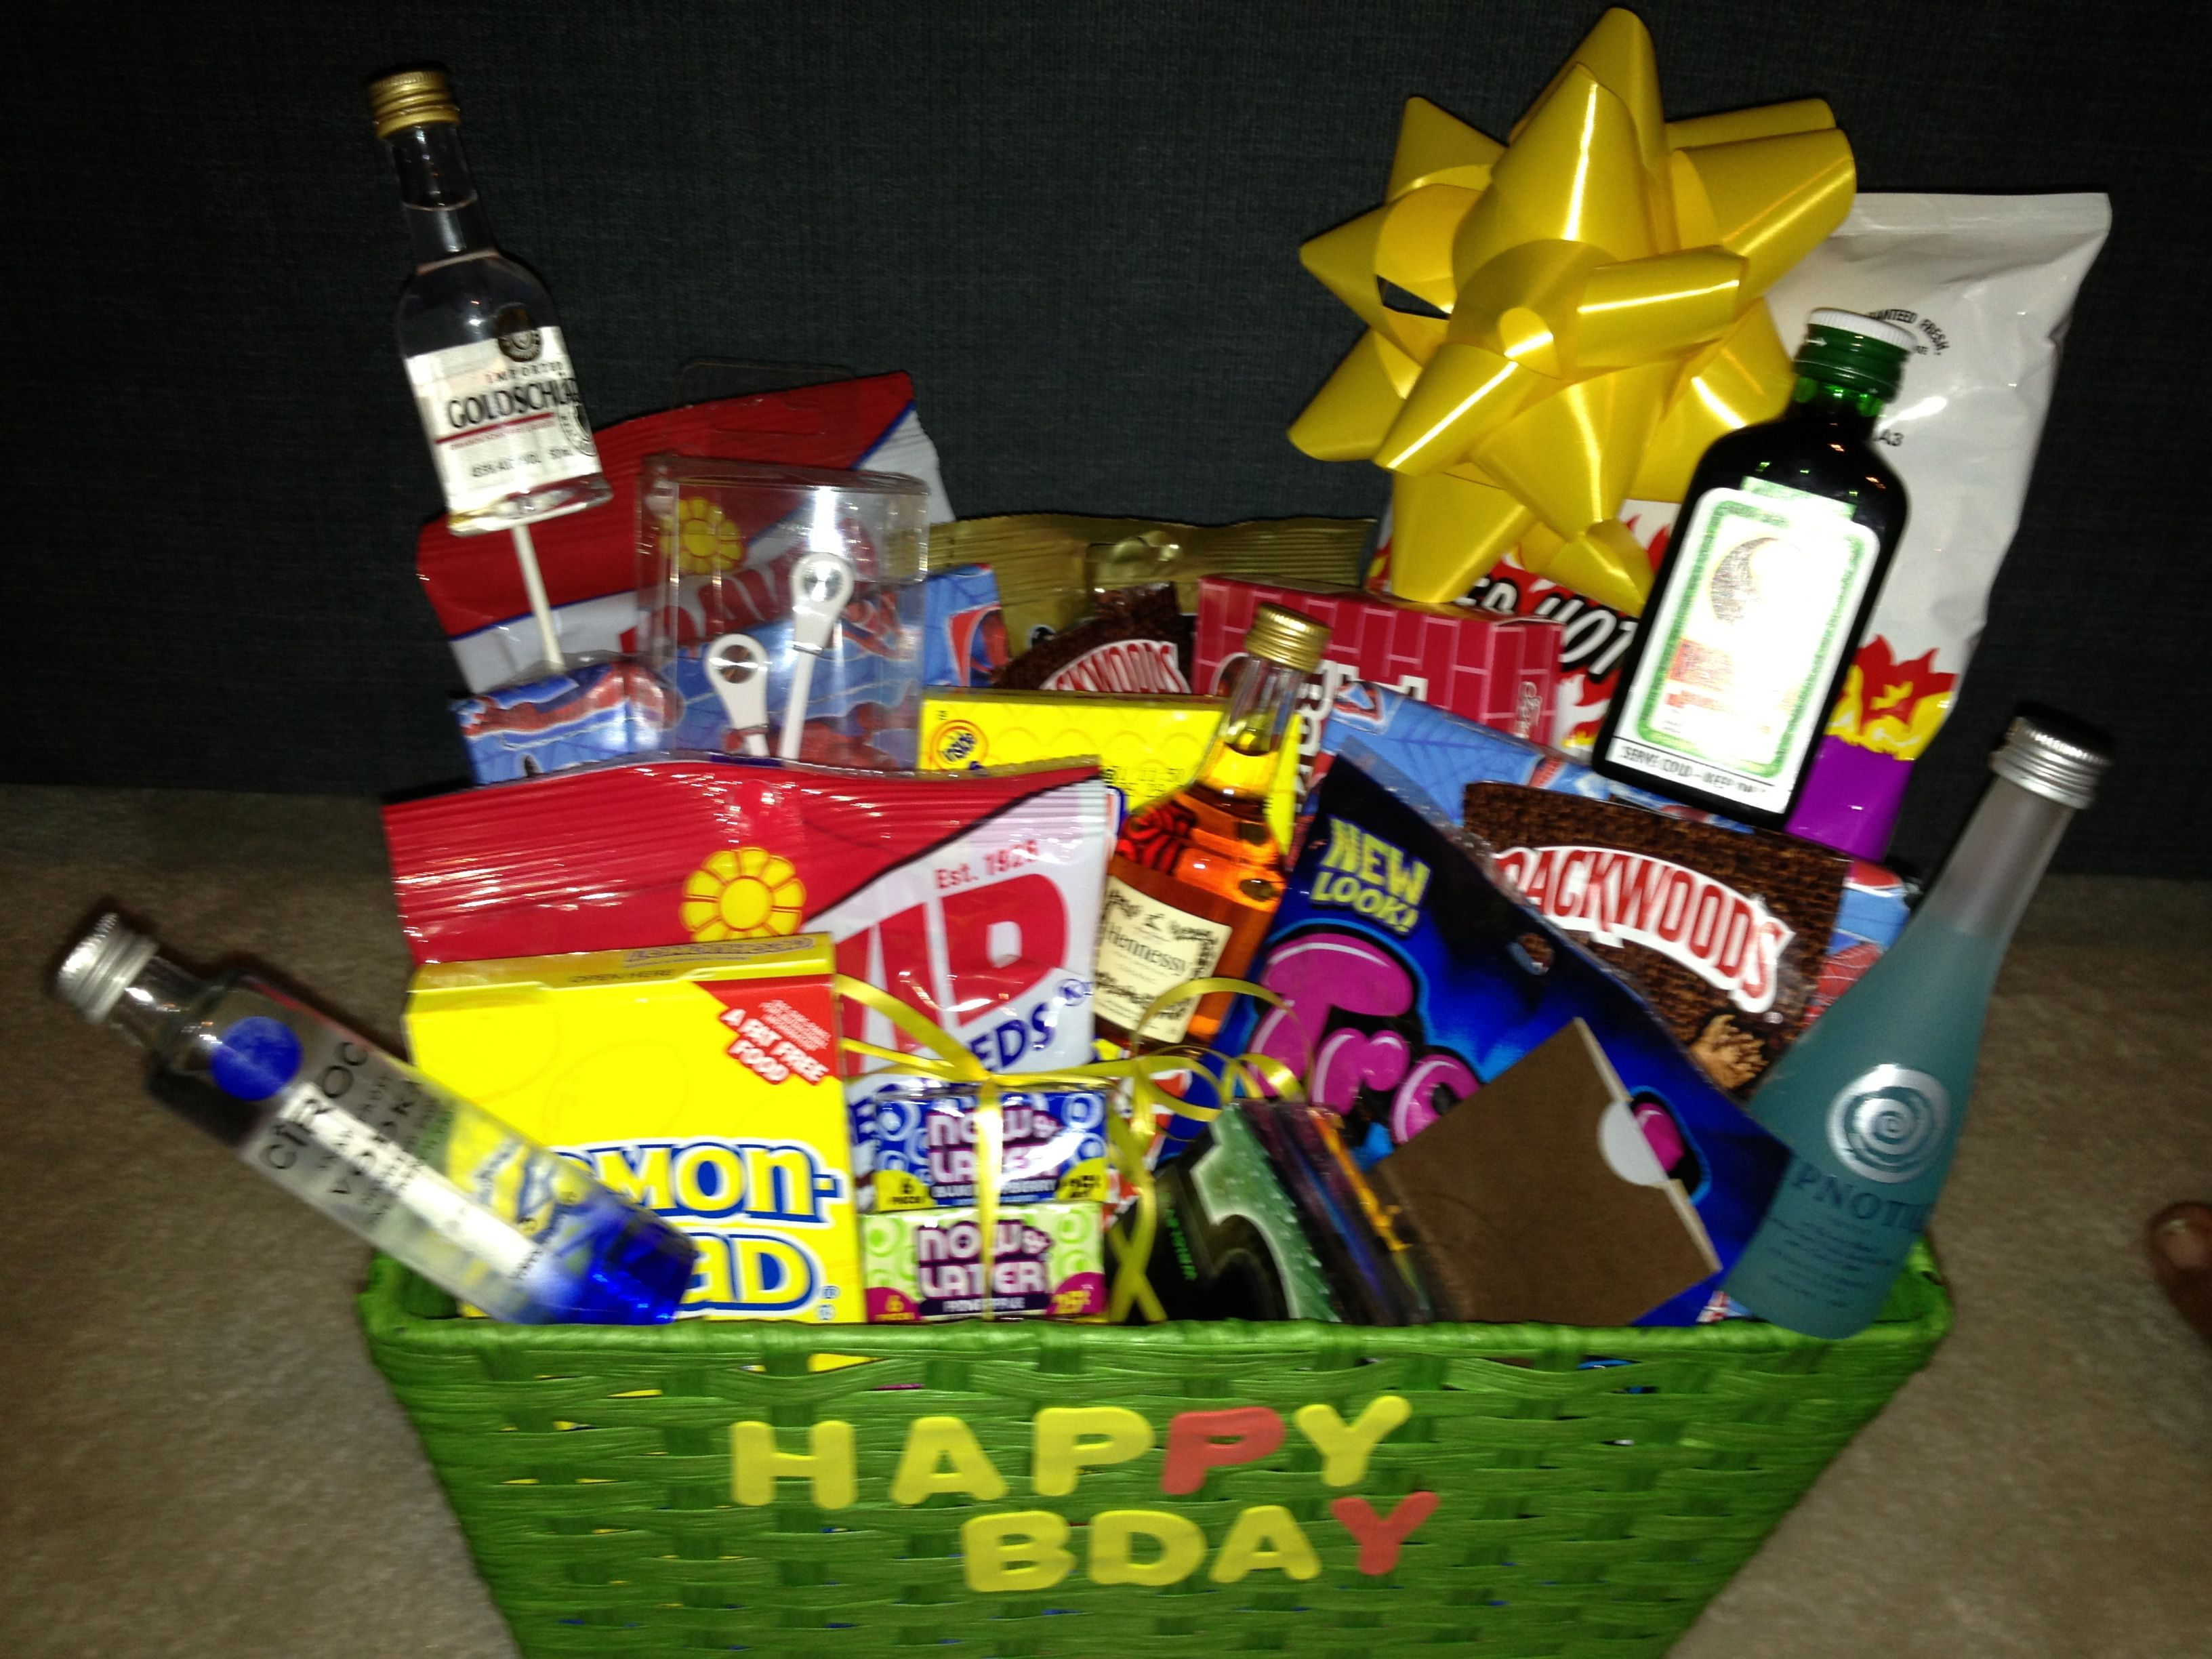 Boyfriend birthday gift basket gift ideas pinterest for First gift for boyfriend birthday